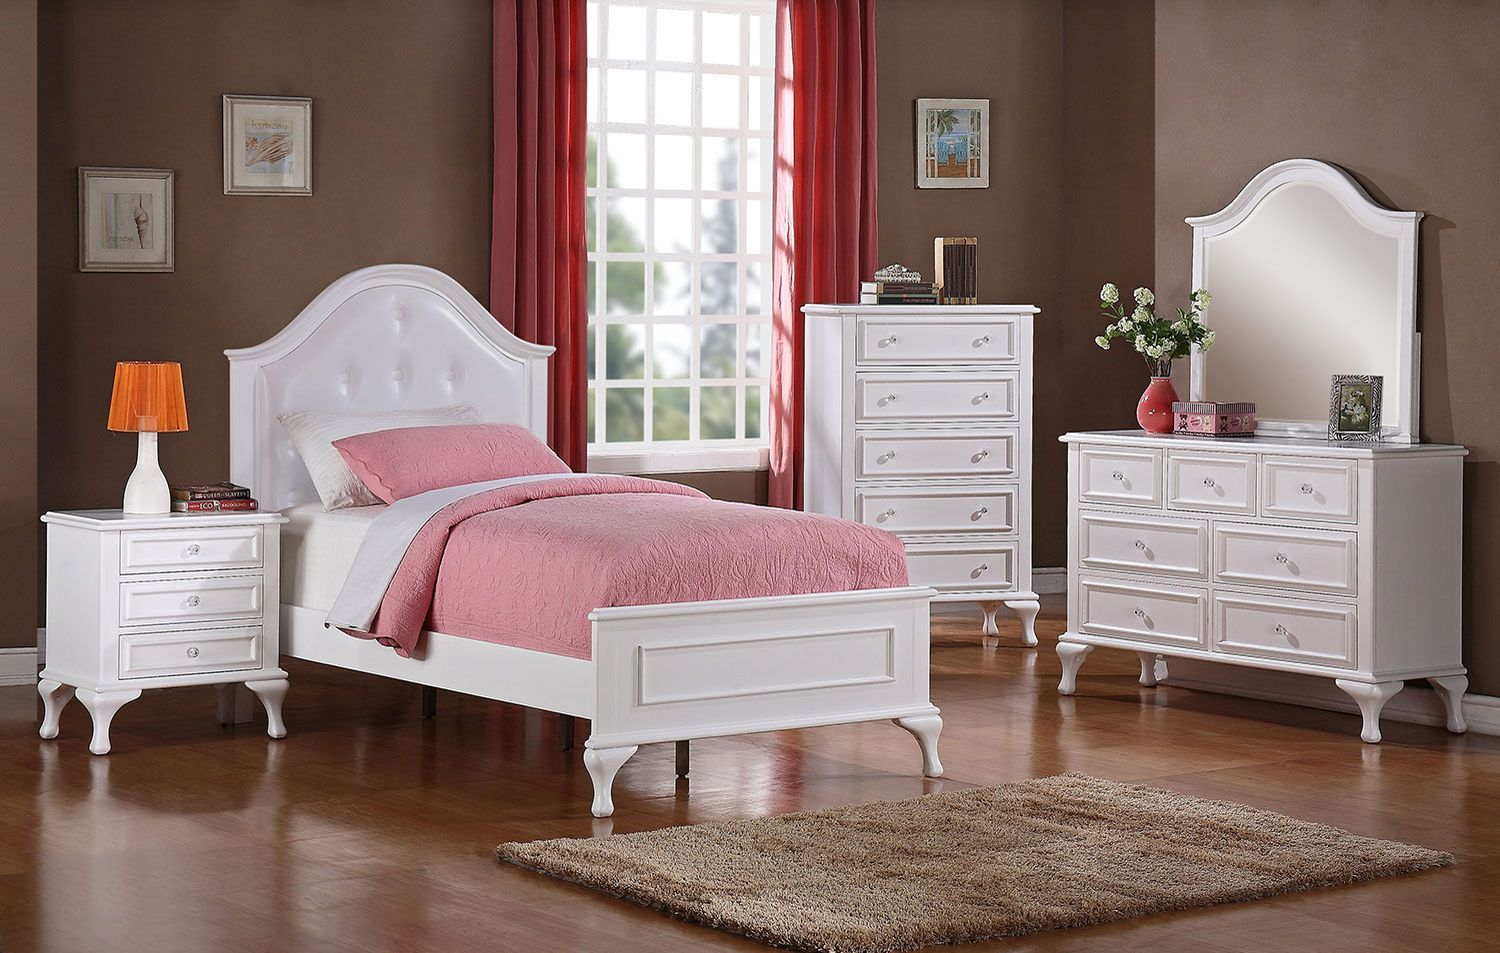 Riva 3-Piece Twin Bedroom Set - White